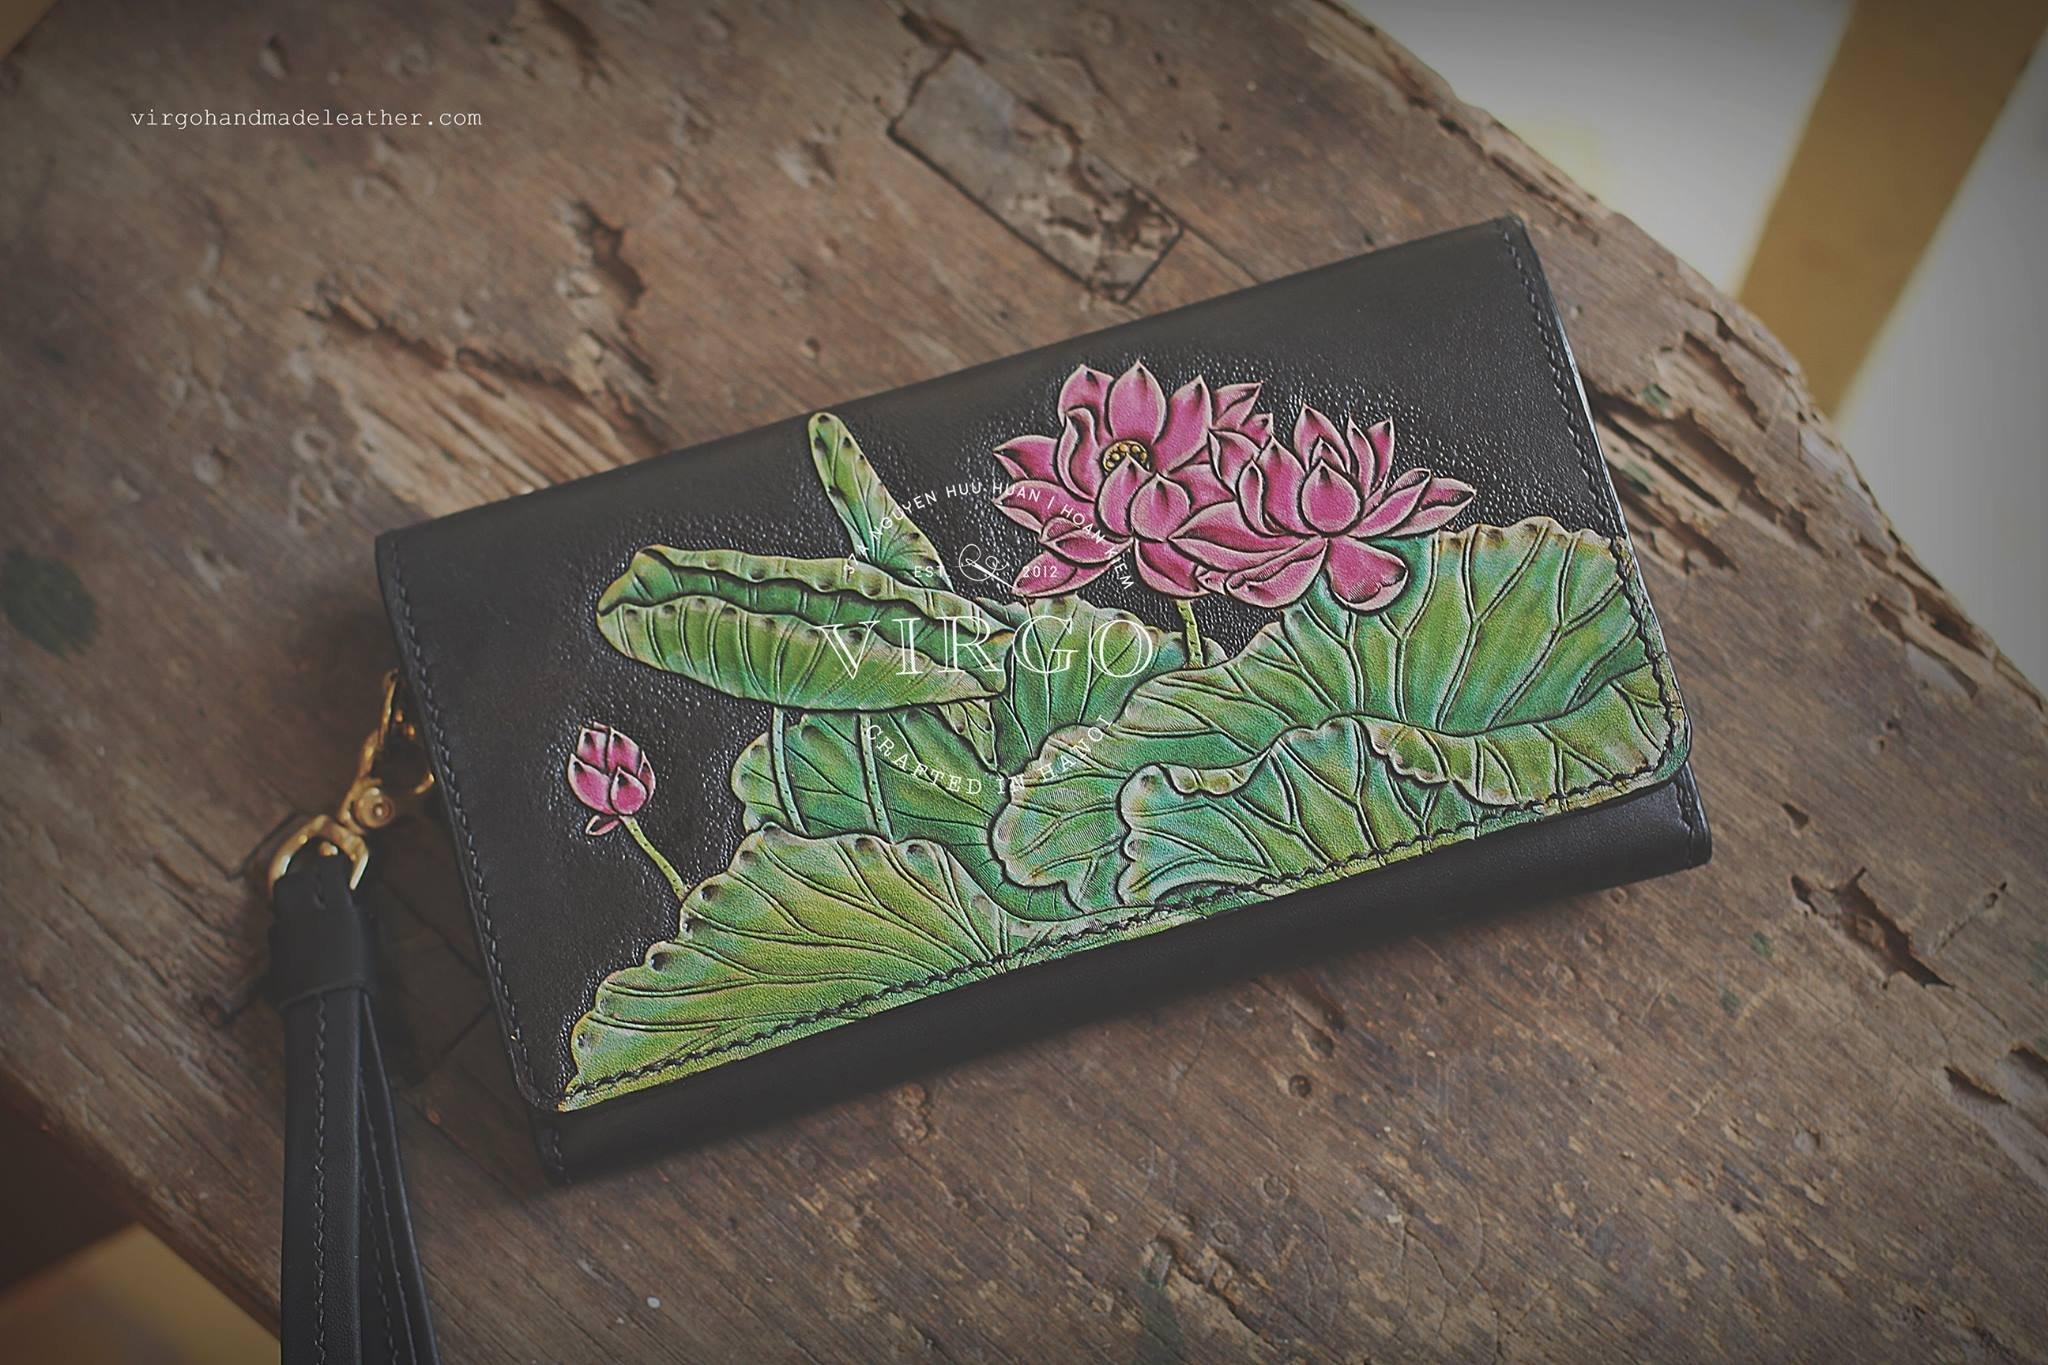 Lotus hand tooled wallet for women | Personalized Vintage vegetable tanned leather handmade wallet